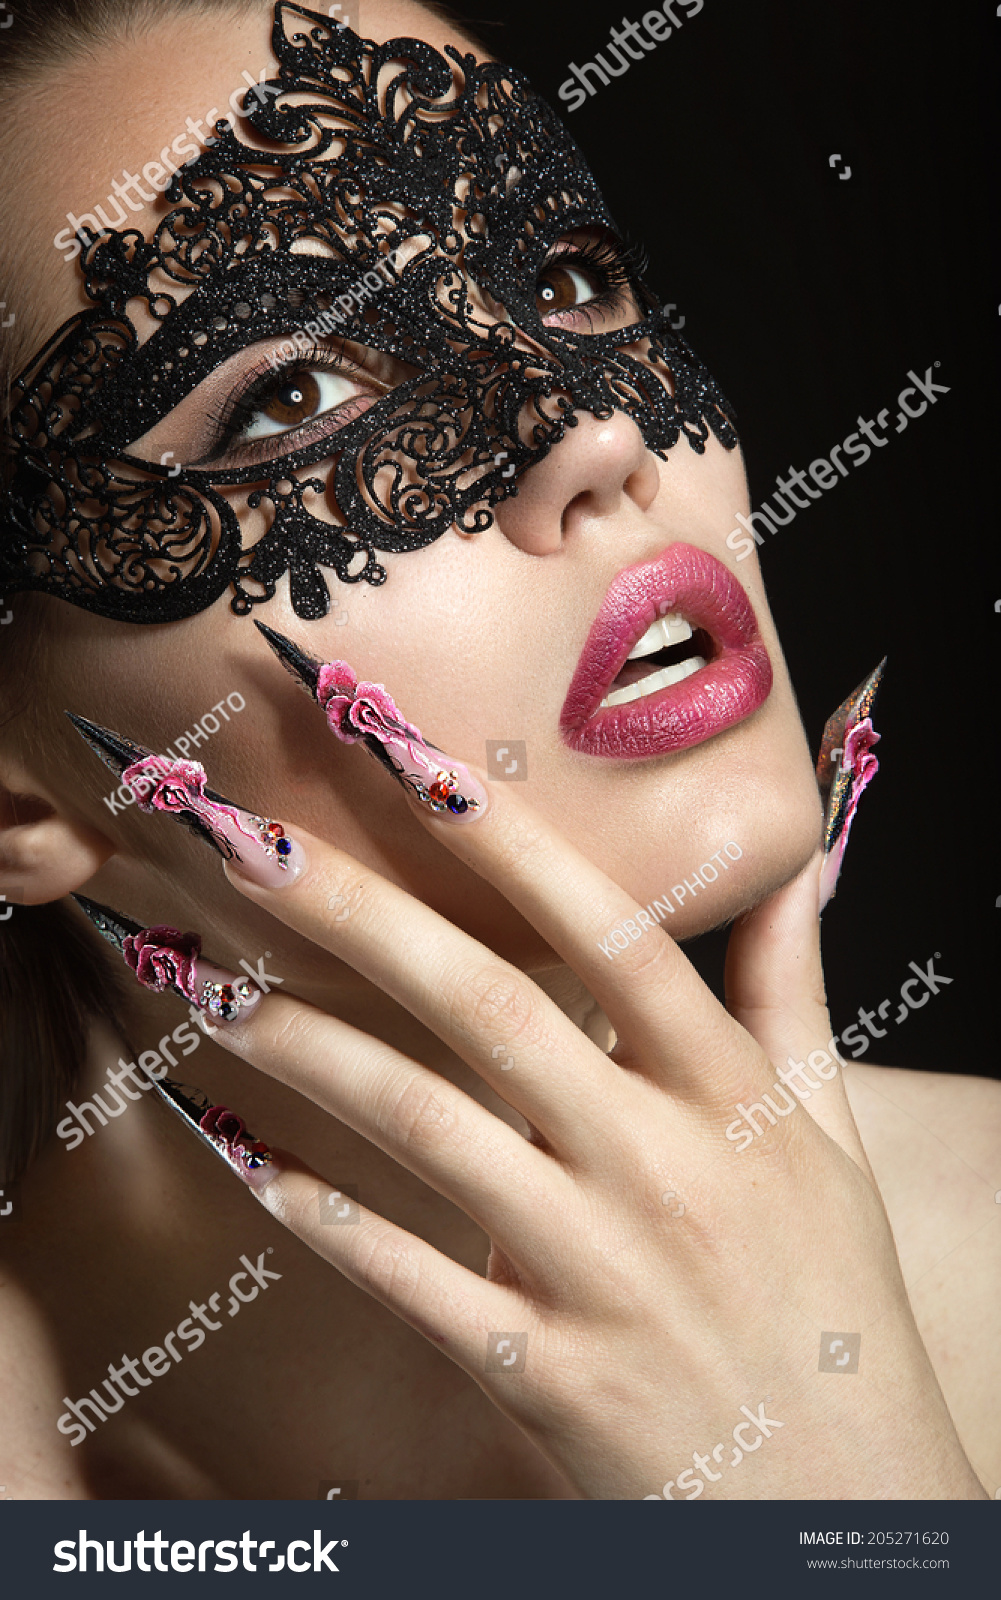 Beautiful Girl Mask Long Fingernails Portrait Stock Photo (Royalty ...